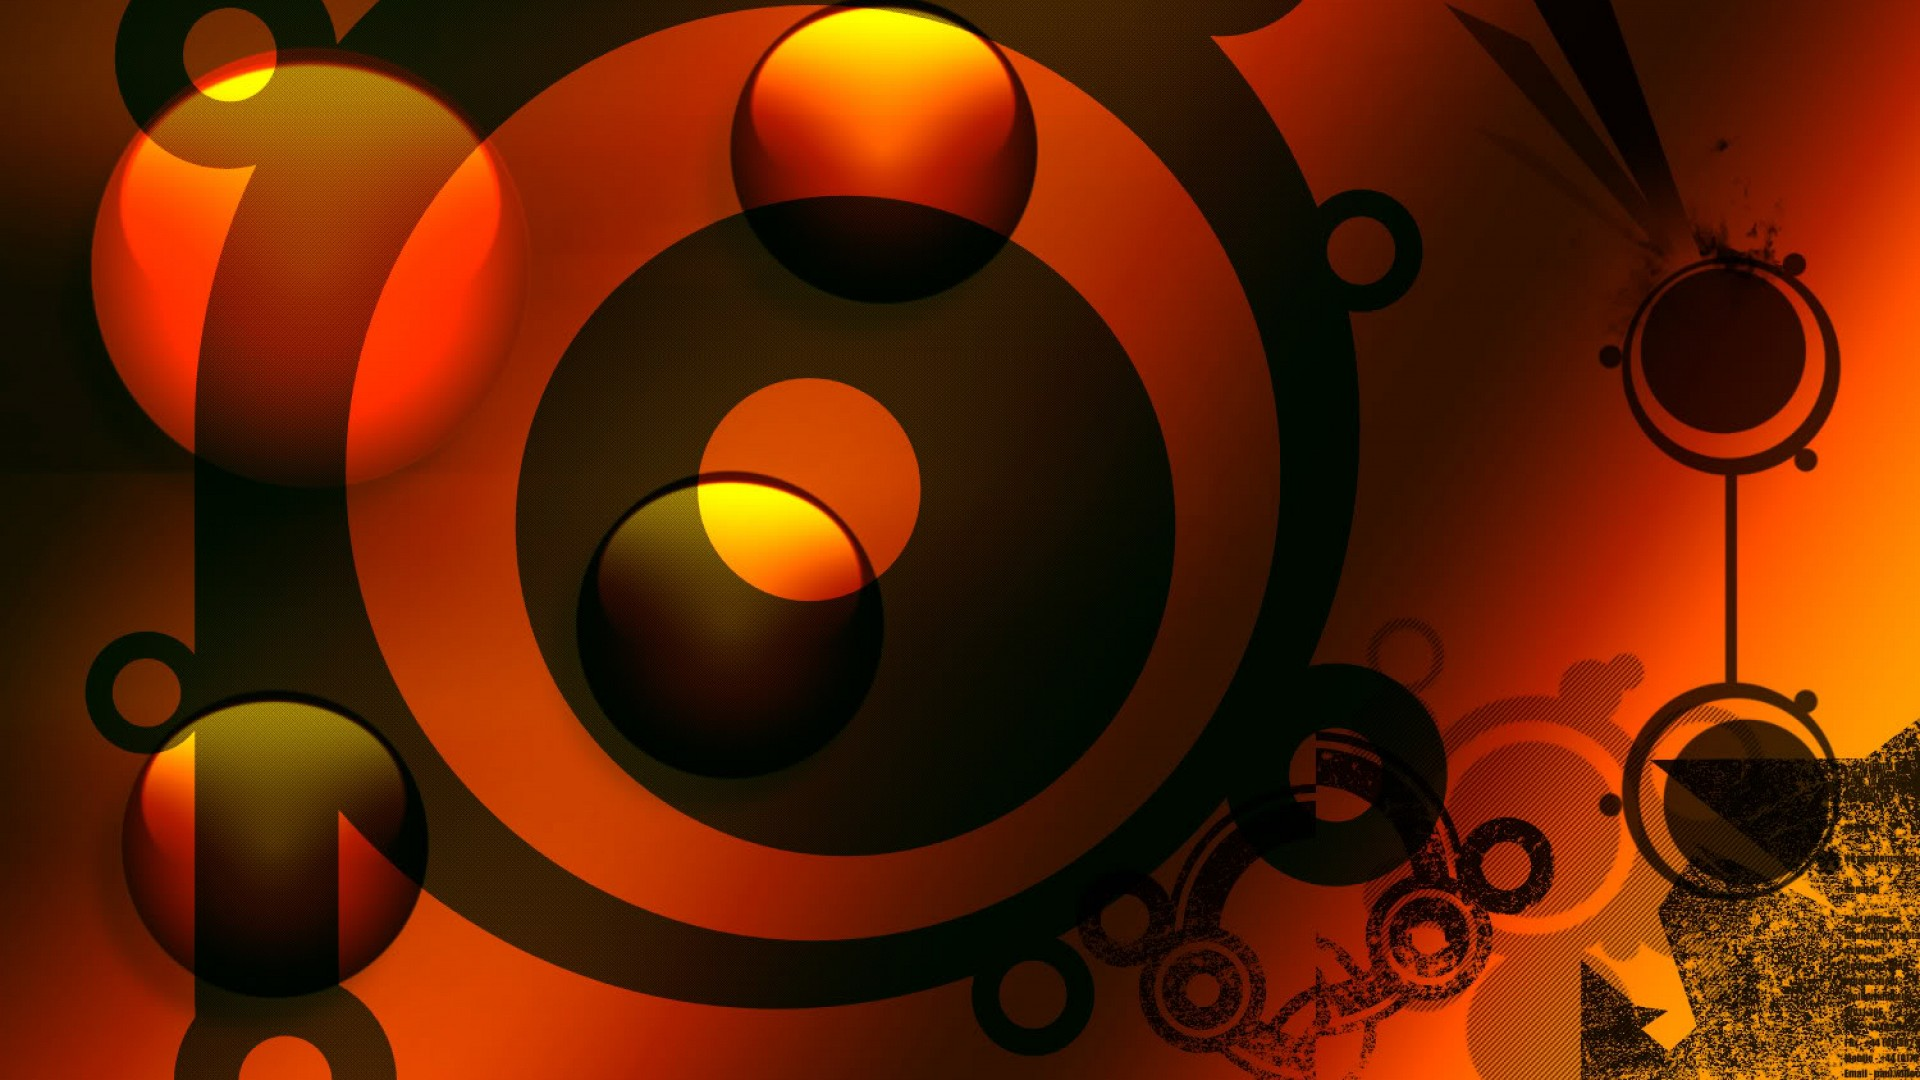 HD Vector Wallpapers 1920x1080